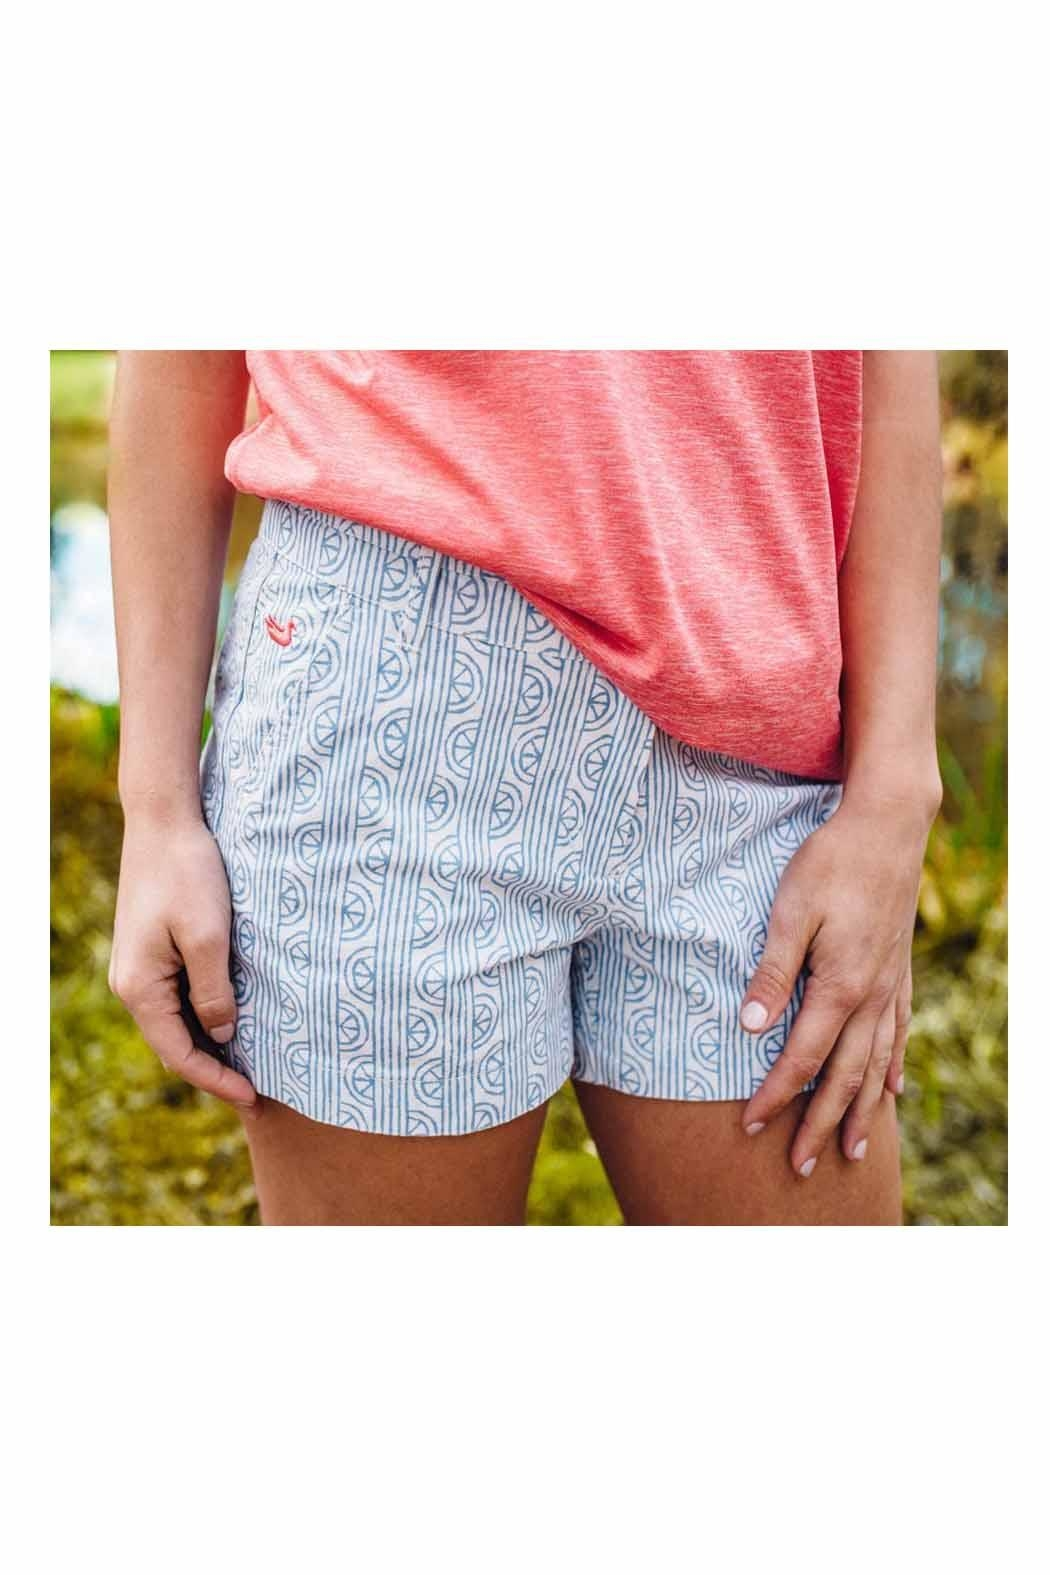 Southern Marsh  Teal Patterned Shorts - Main Image